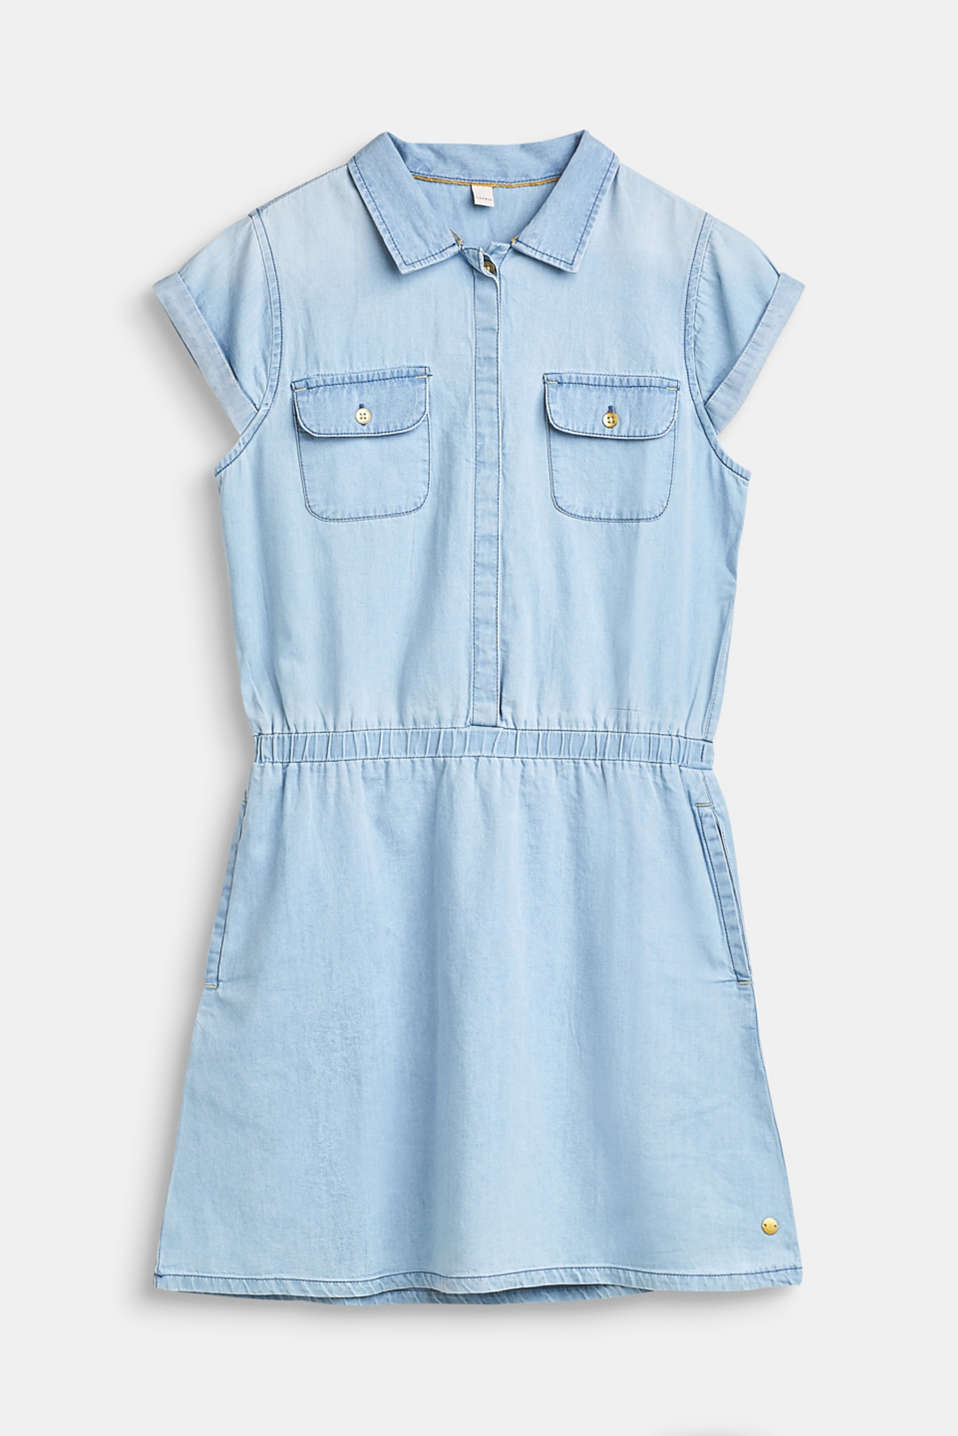 Esprit - Denim dress in 100% cotton